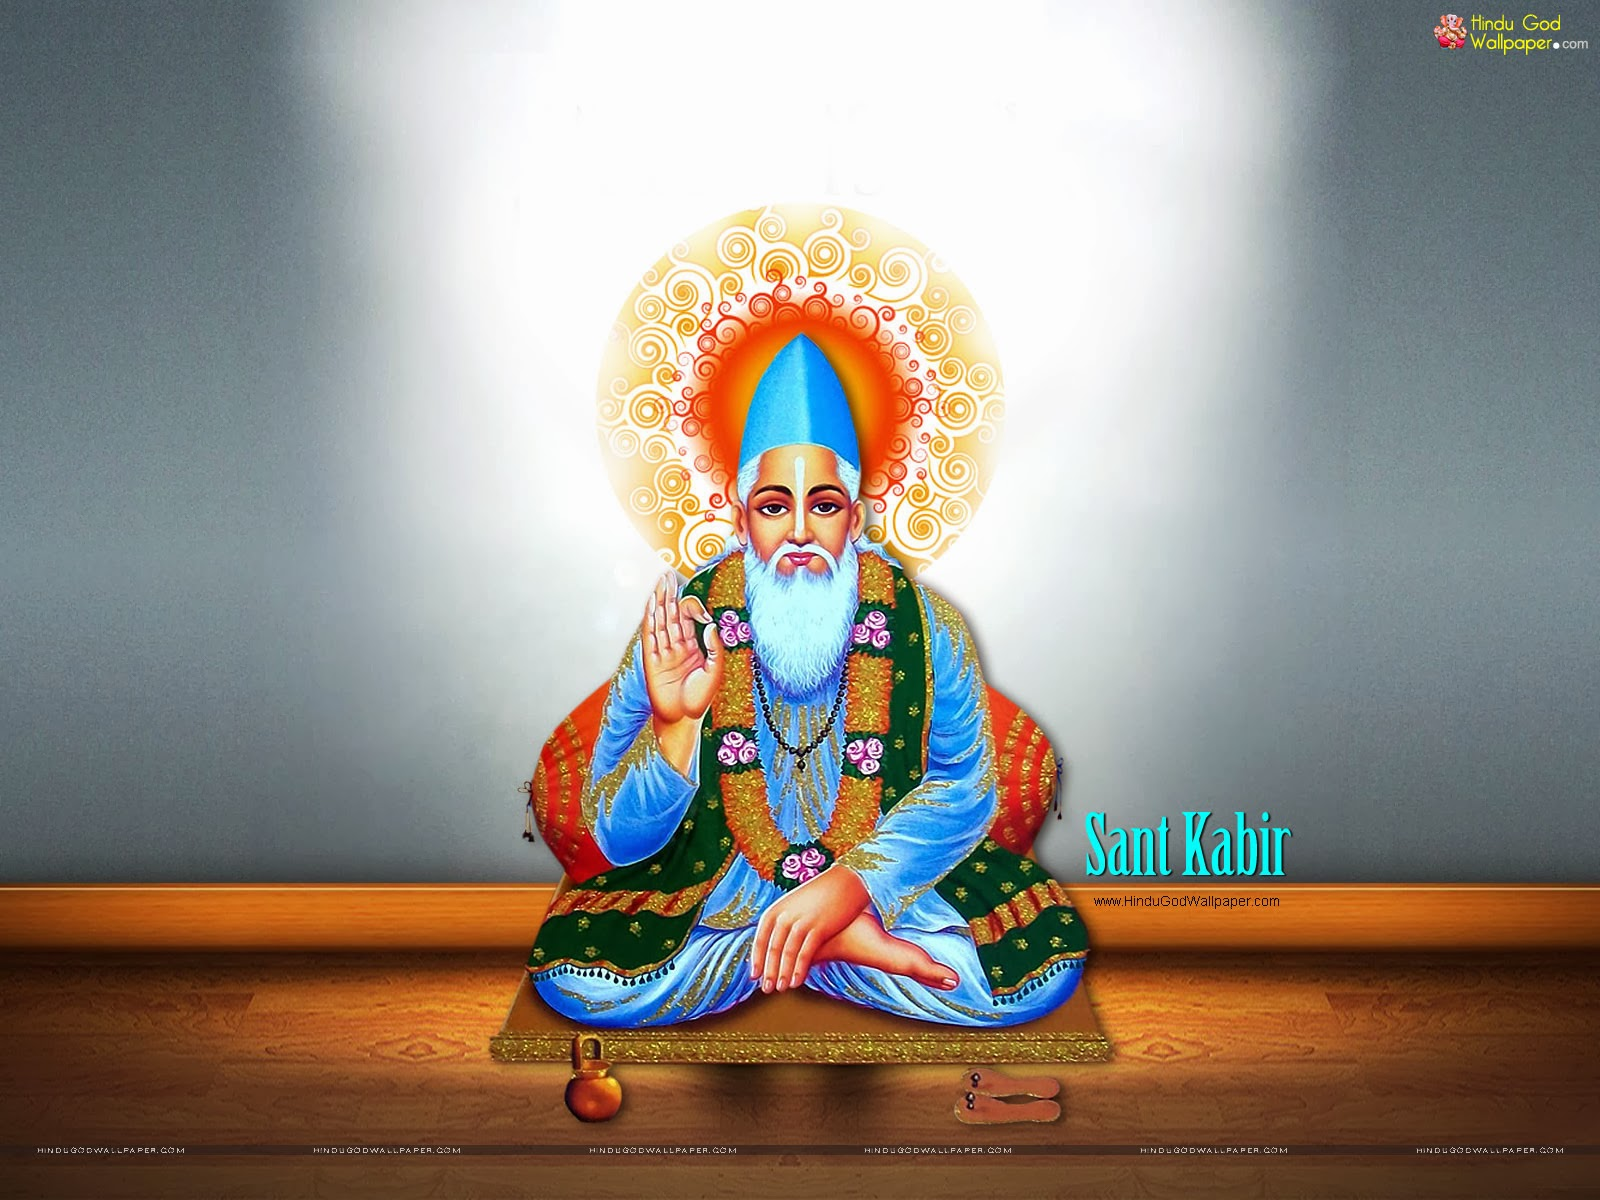 KABIR DAS  Hindu God Wallpapers Download